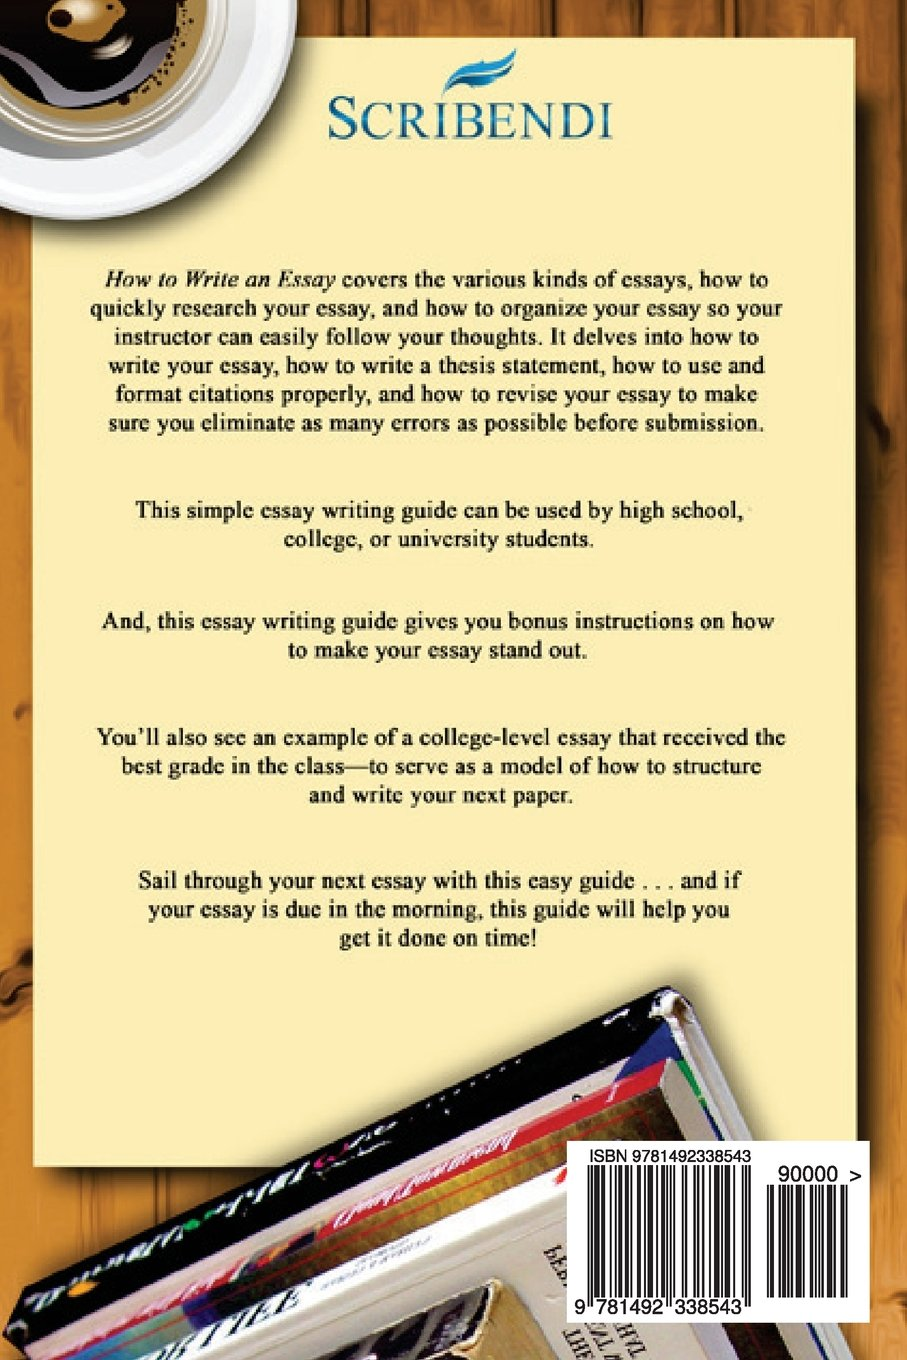 how to write an essay in five easy steps scribendi 9781492338543 how to write an essay in five easy steps scribendi 9781492338543 amazon com books